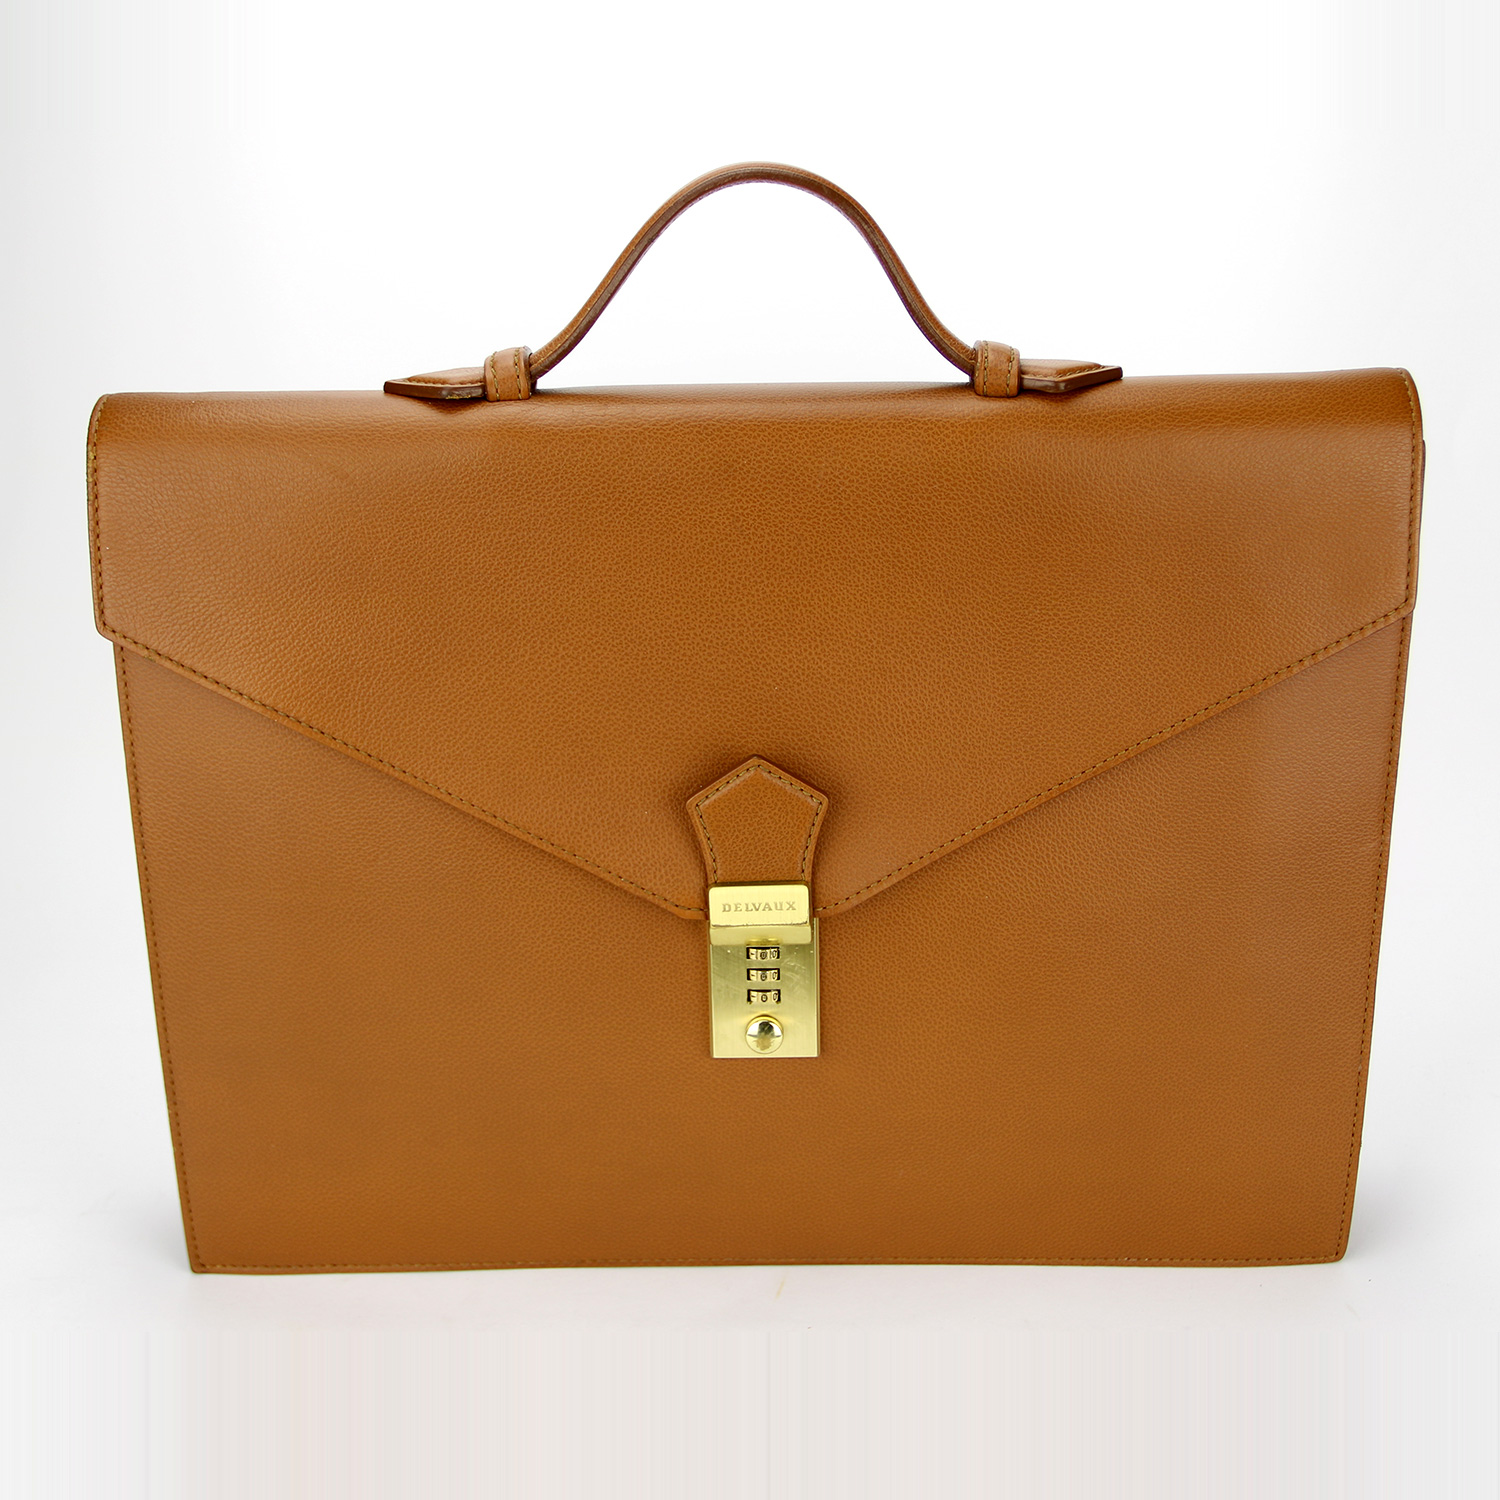 Porte-documents Serviette Delvaux Authentique d'occasion en cuir grainé couleur camel